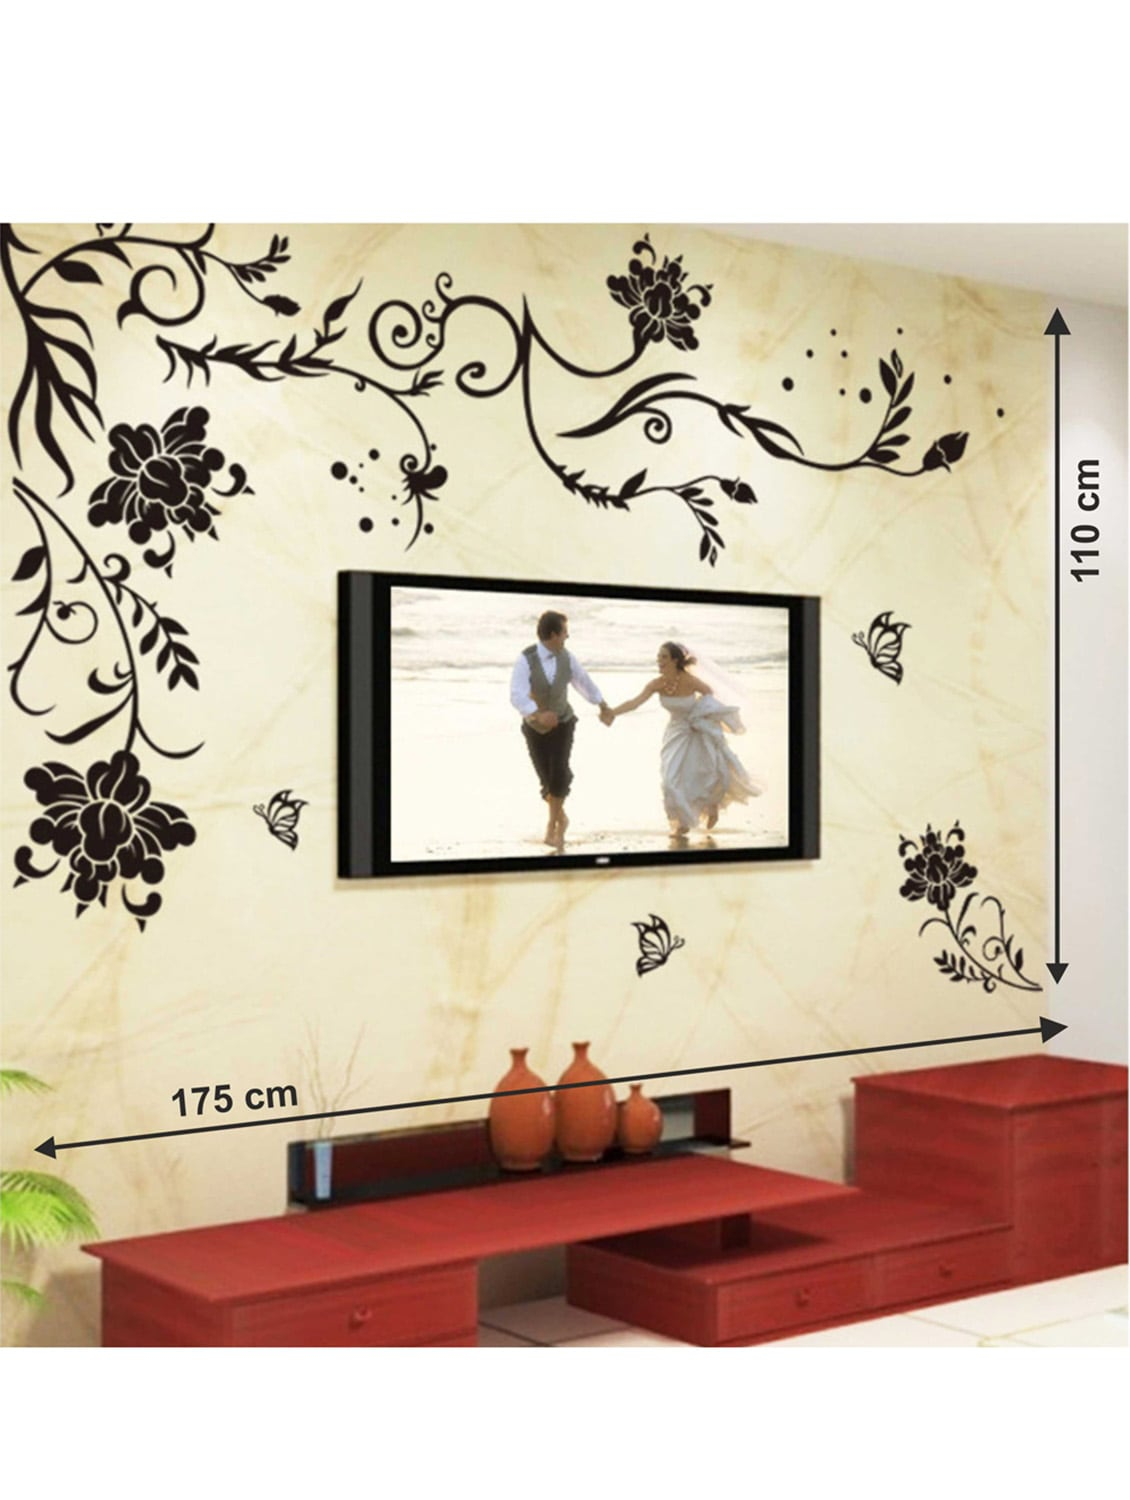 large wall stickers for living room india curtain ideas with blinds buy black size floral vine butterflies corner sofa tv background decal by stikerskart online shopping decals